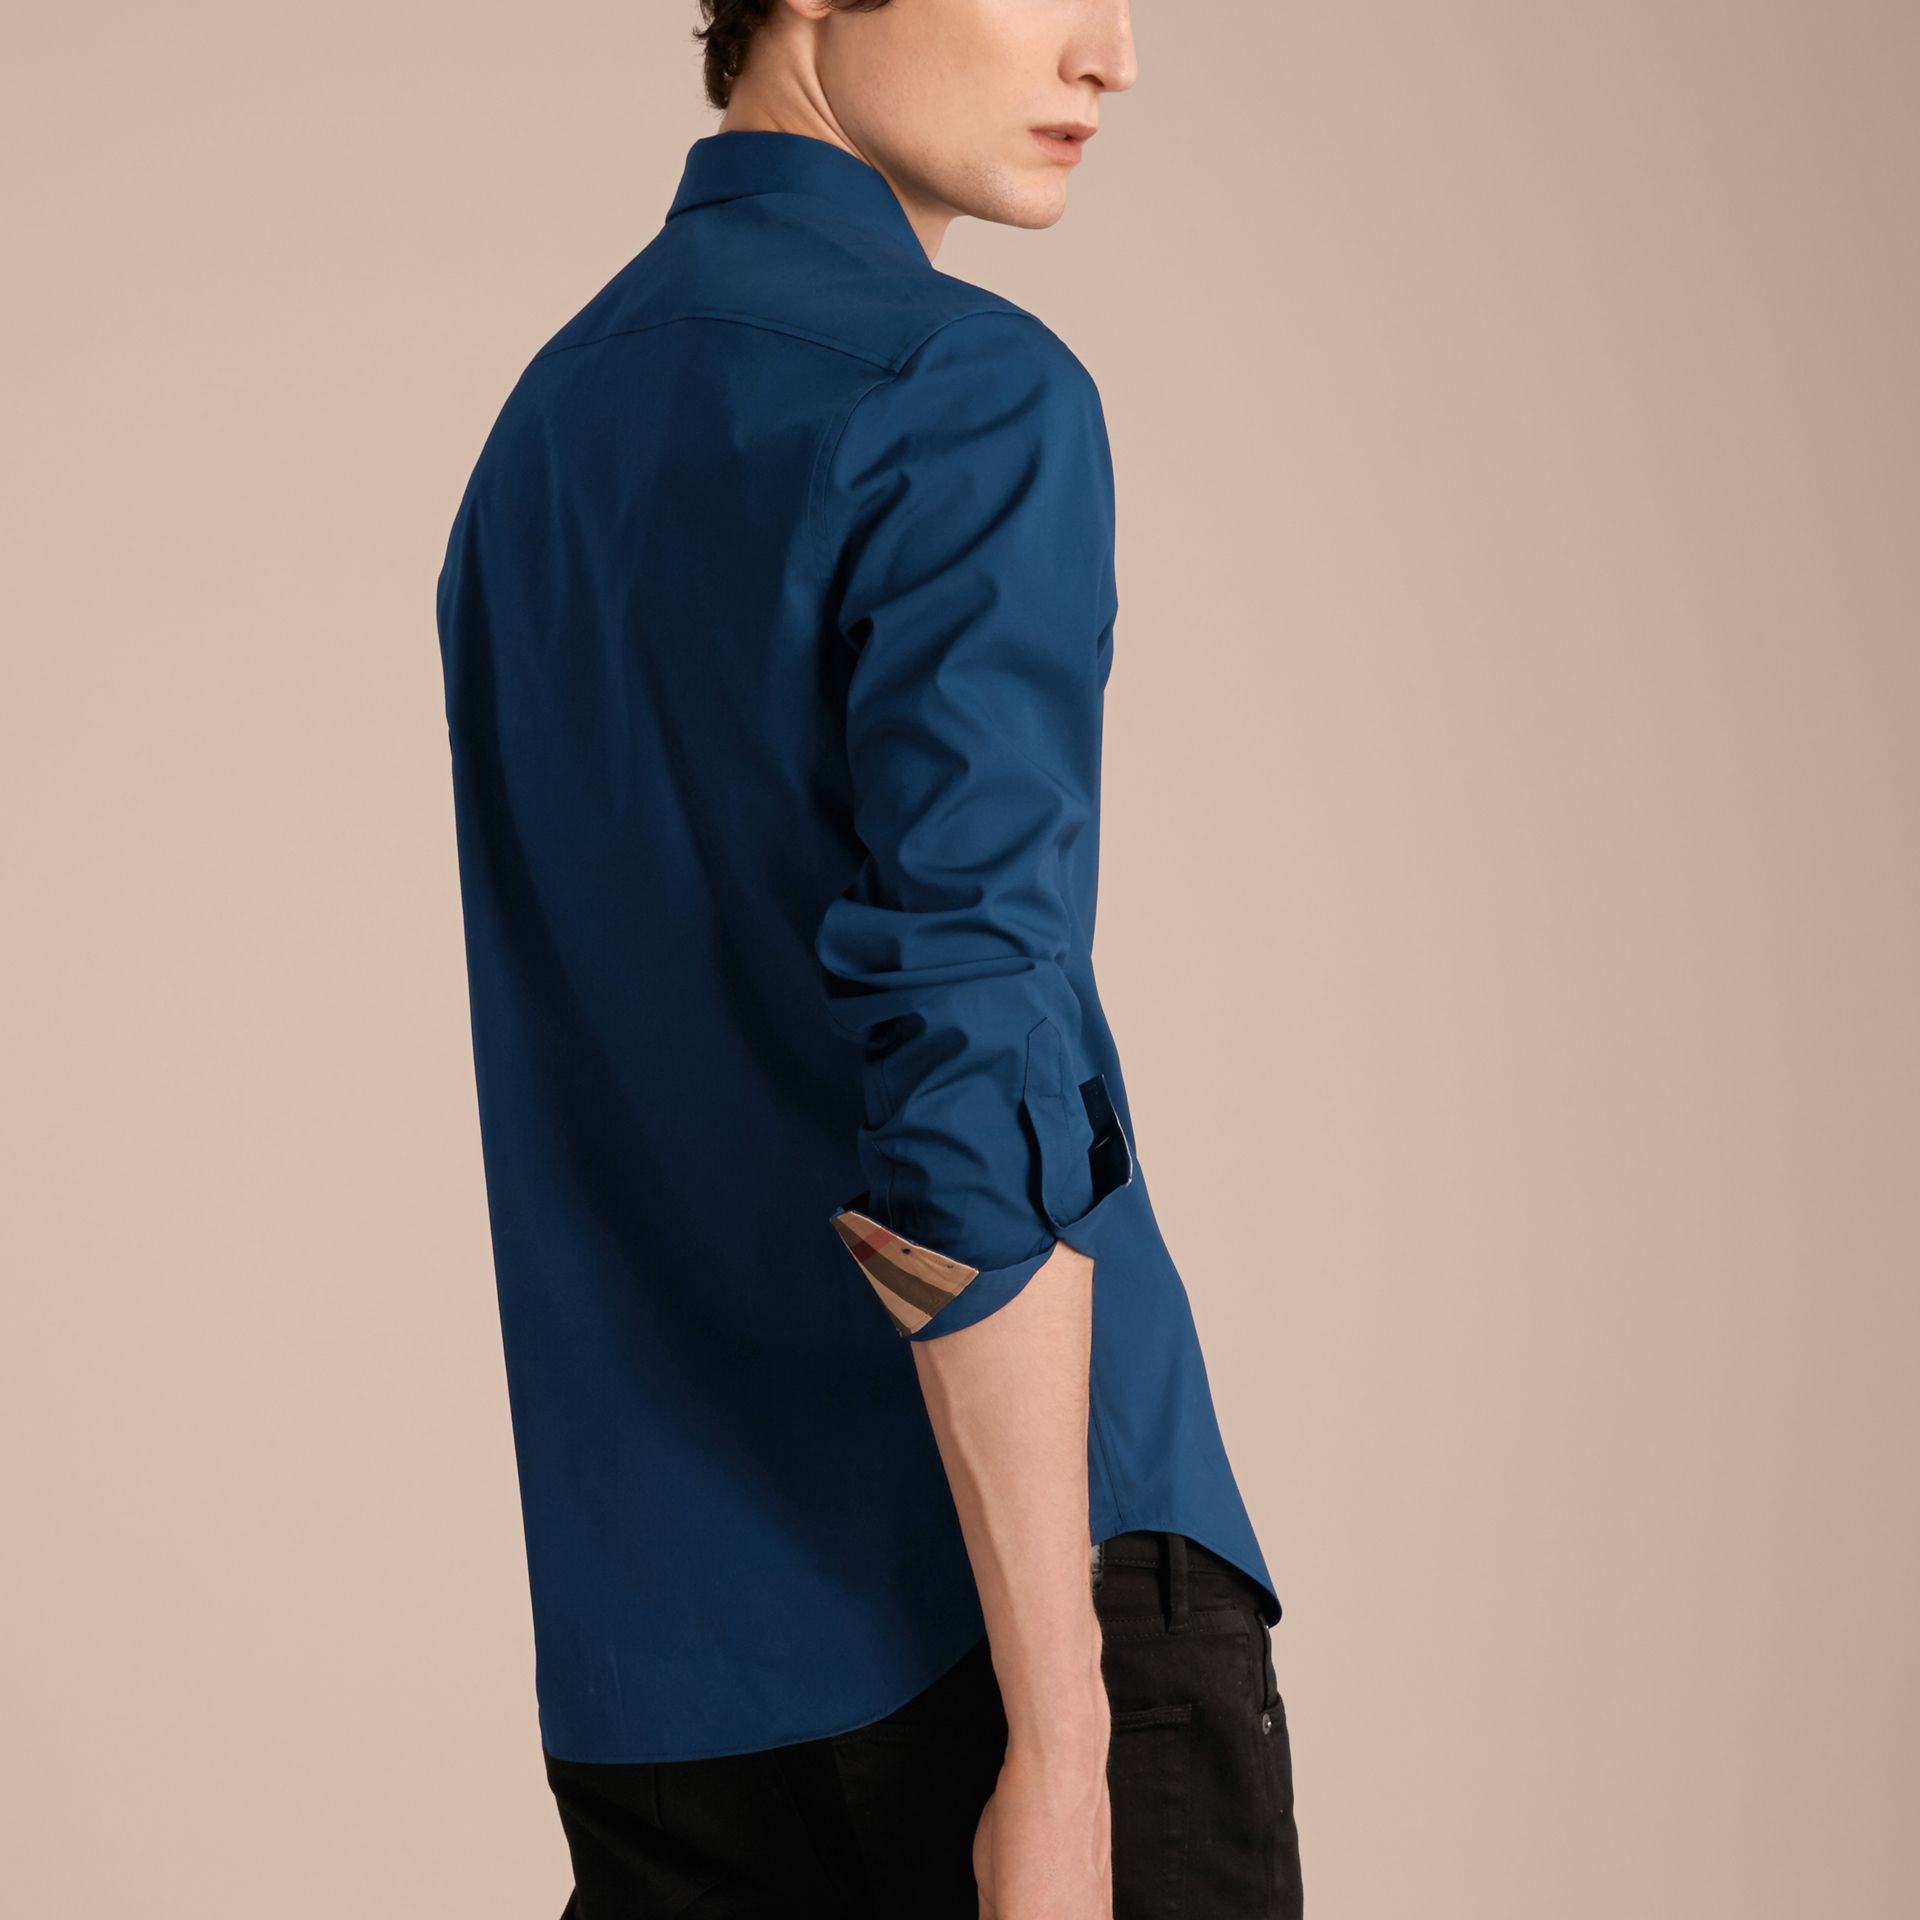 Deep teal blue Check Detail Stretch Cotton Poplin Shirt Deep Teal Blue - gallery image 3